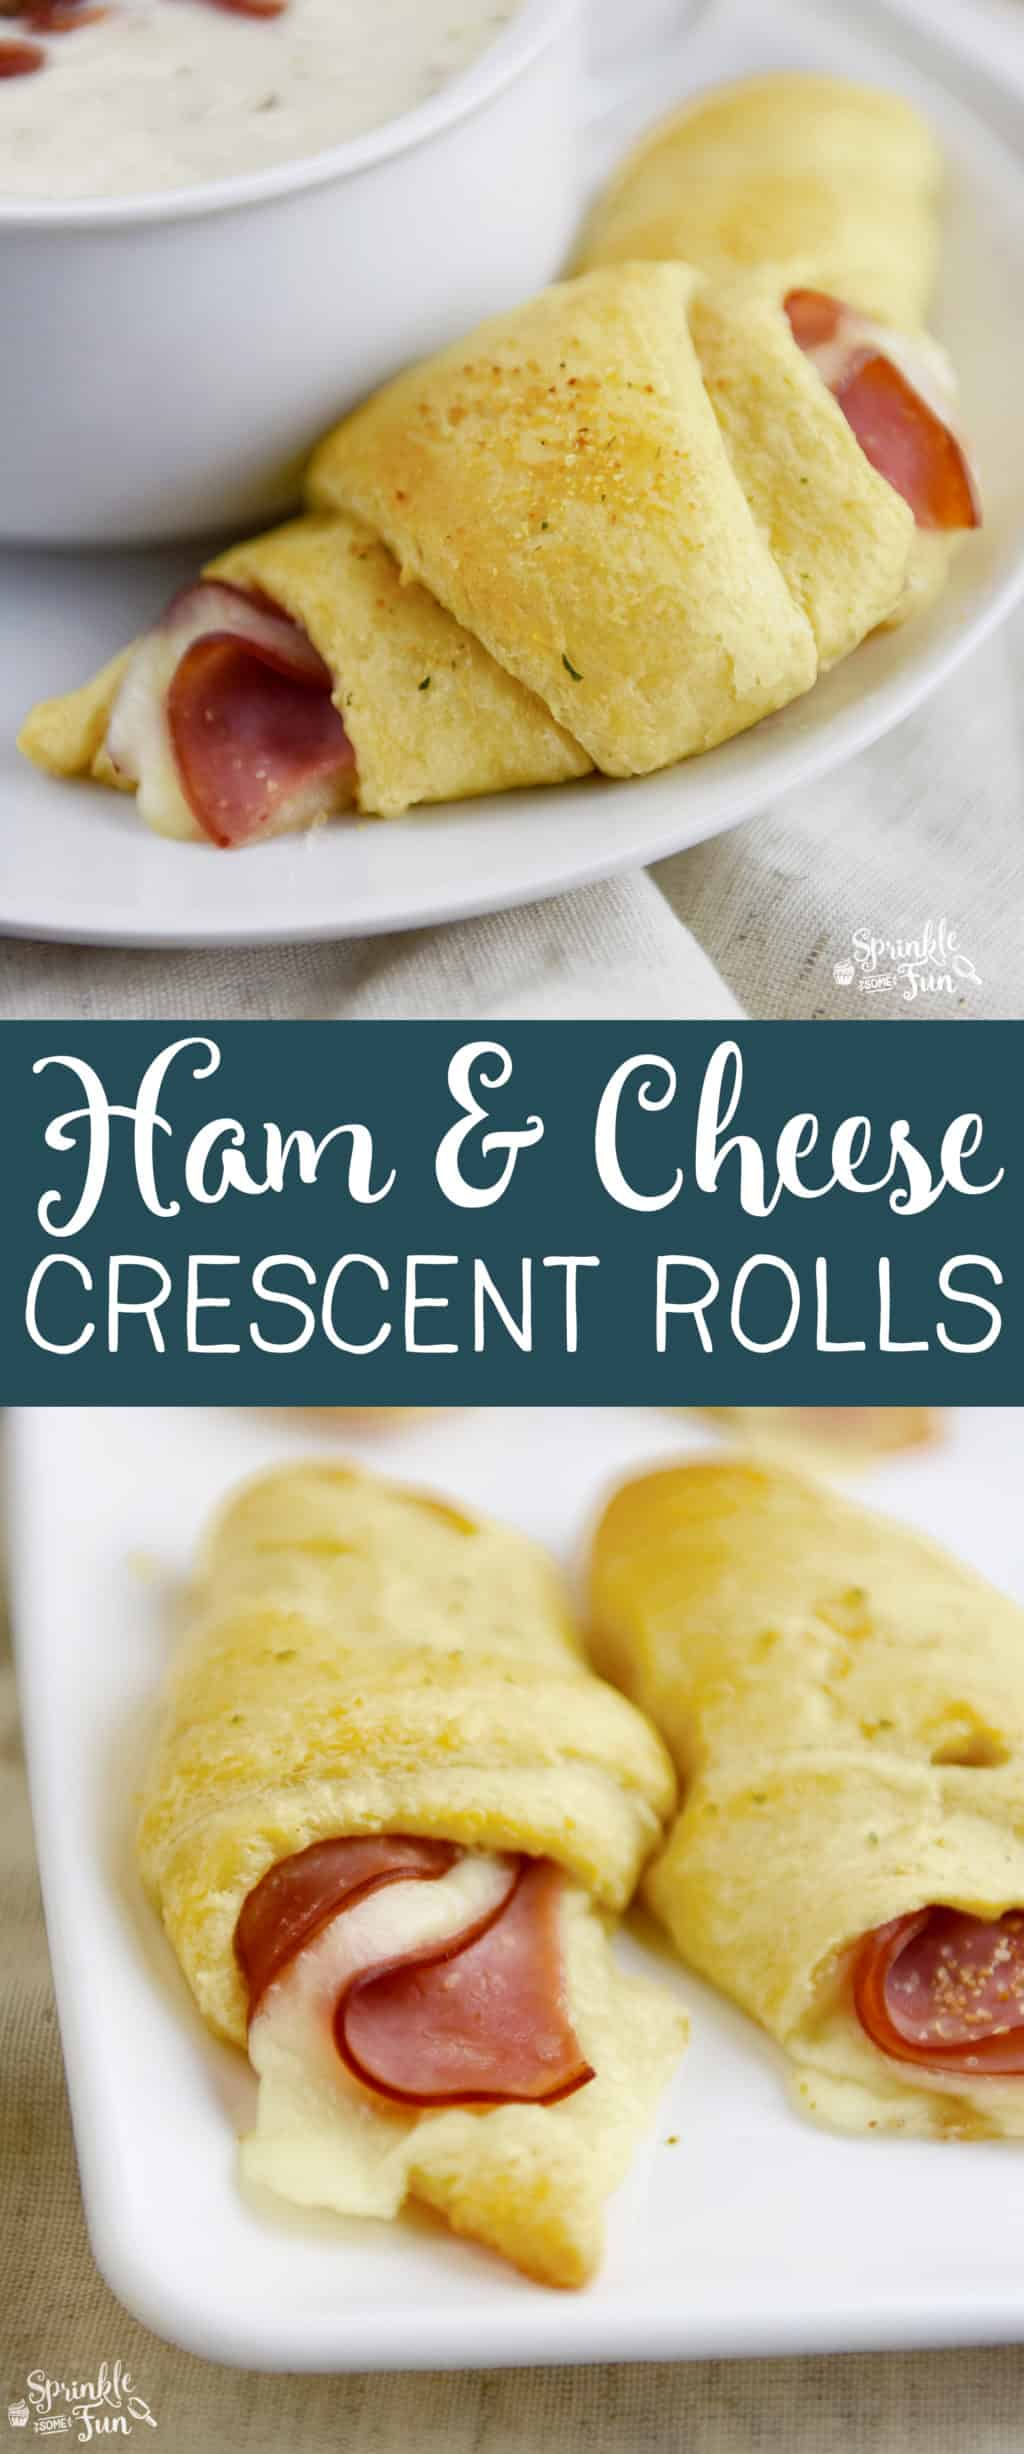 Ham and Cheese Crescent Rolls are like the older, slightly sophisticated cousin of a pig in a blanket! :)